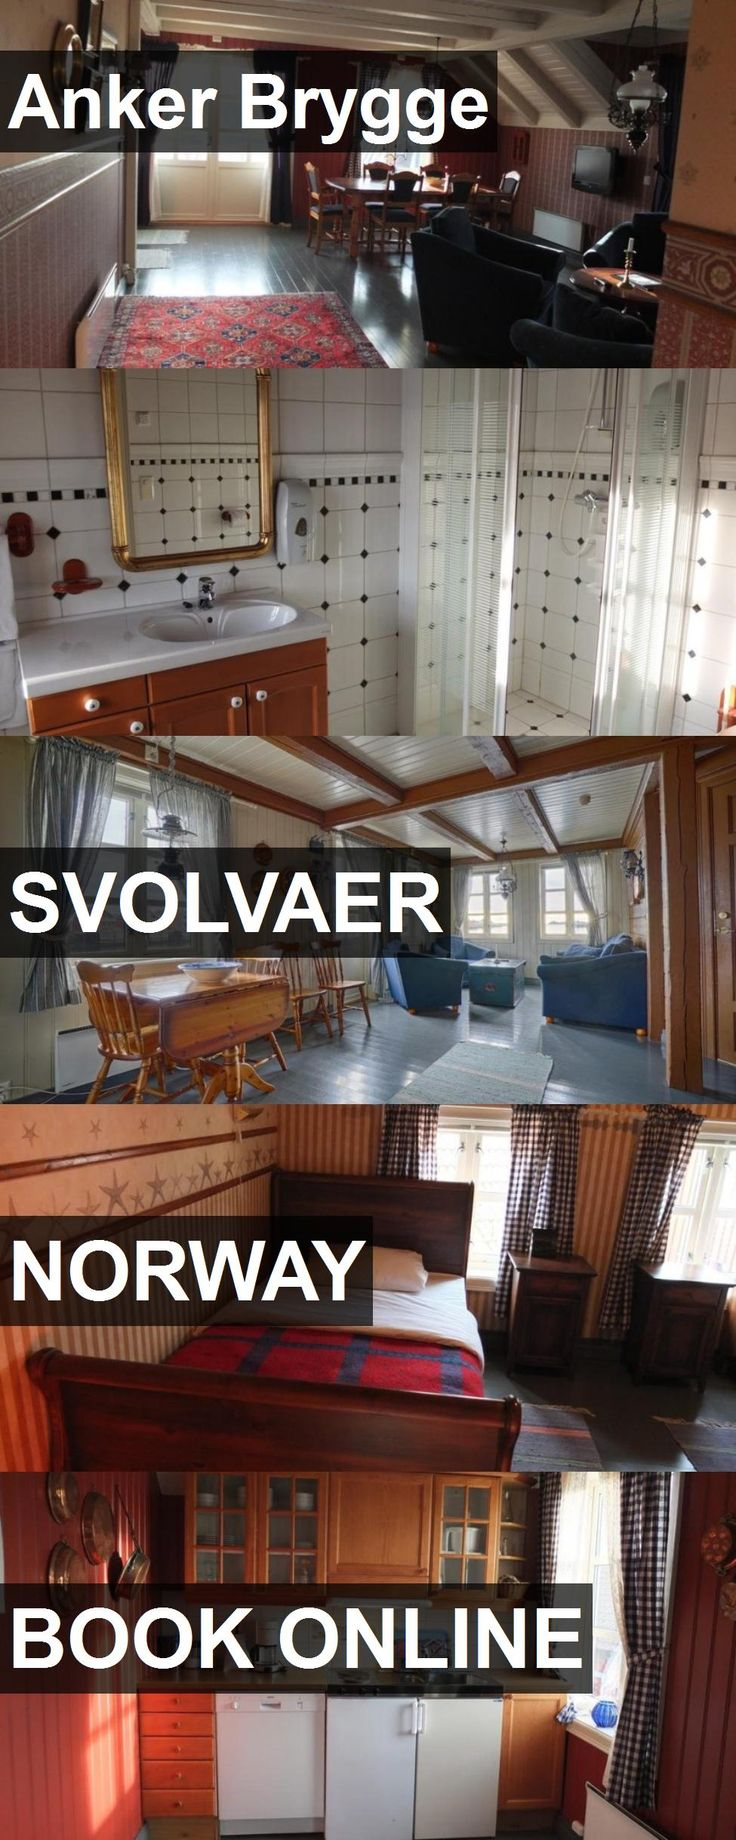 Hotel Anker Brygge in Svolvaer, Norway. For more information, photos, reviews and best prices please follow the link. #Norway #Svolvaer #AnkerBrygge #hotel #travel #vacation